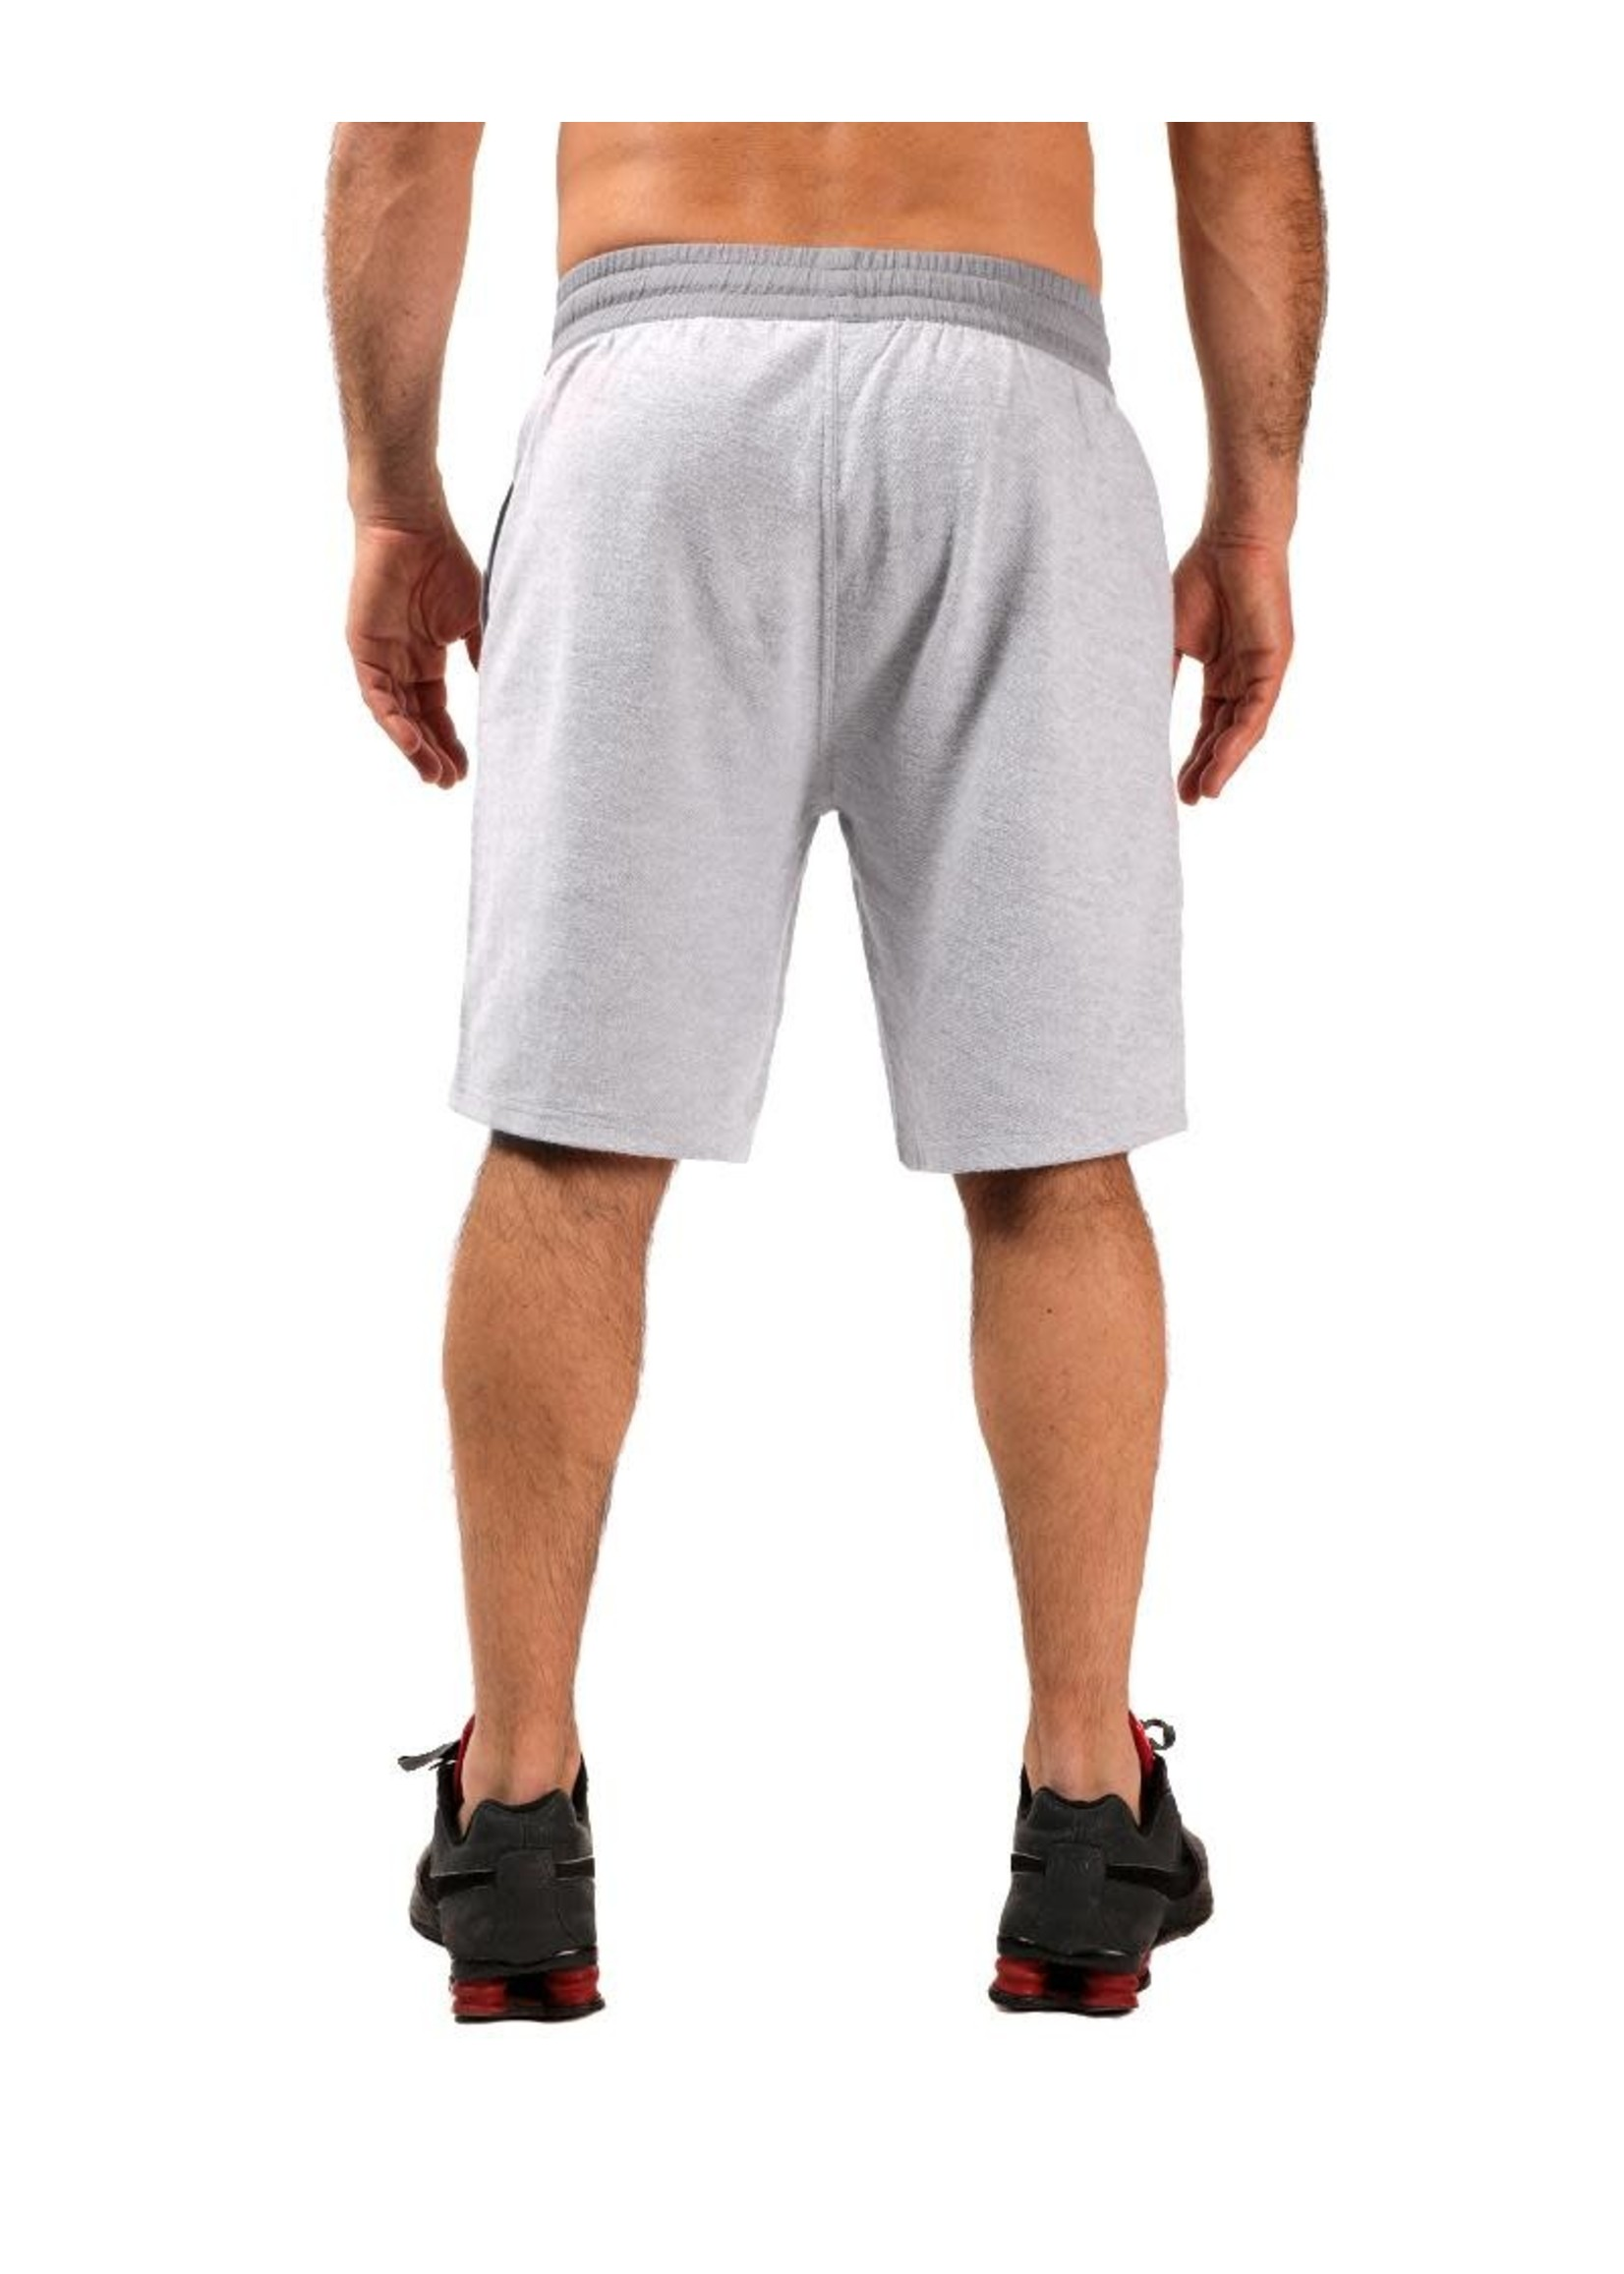 Nasty Pig Nasty Pig Brawler Long Short